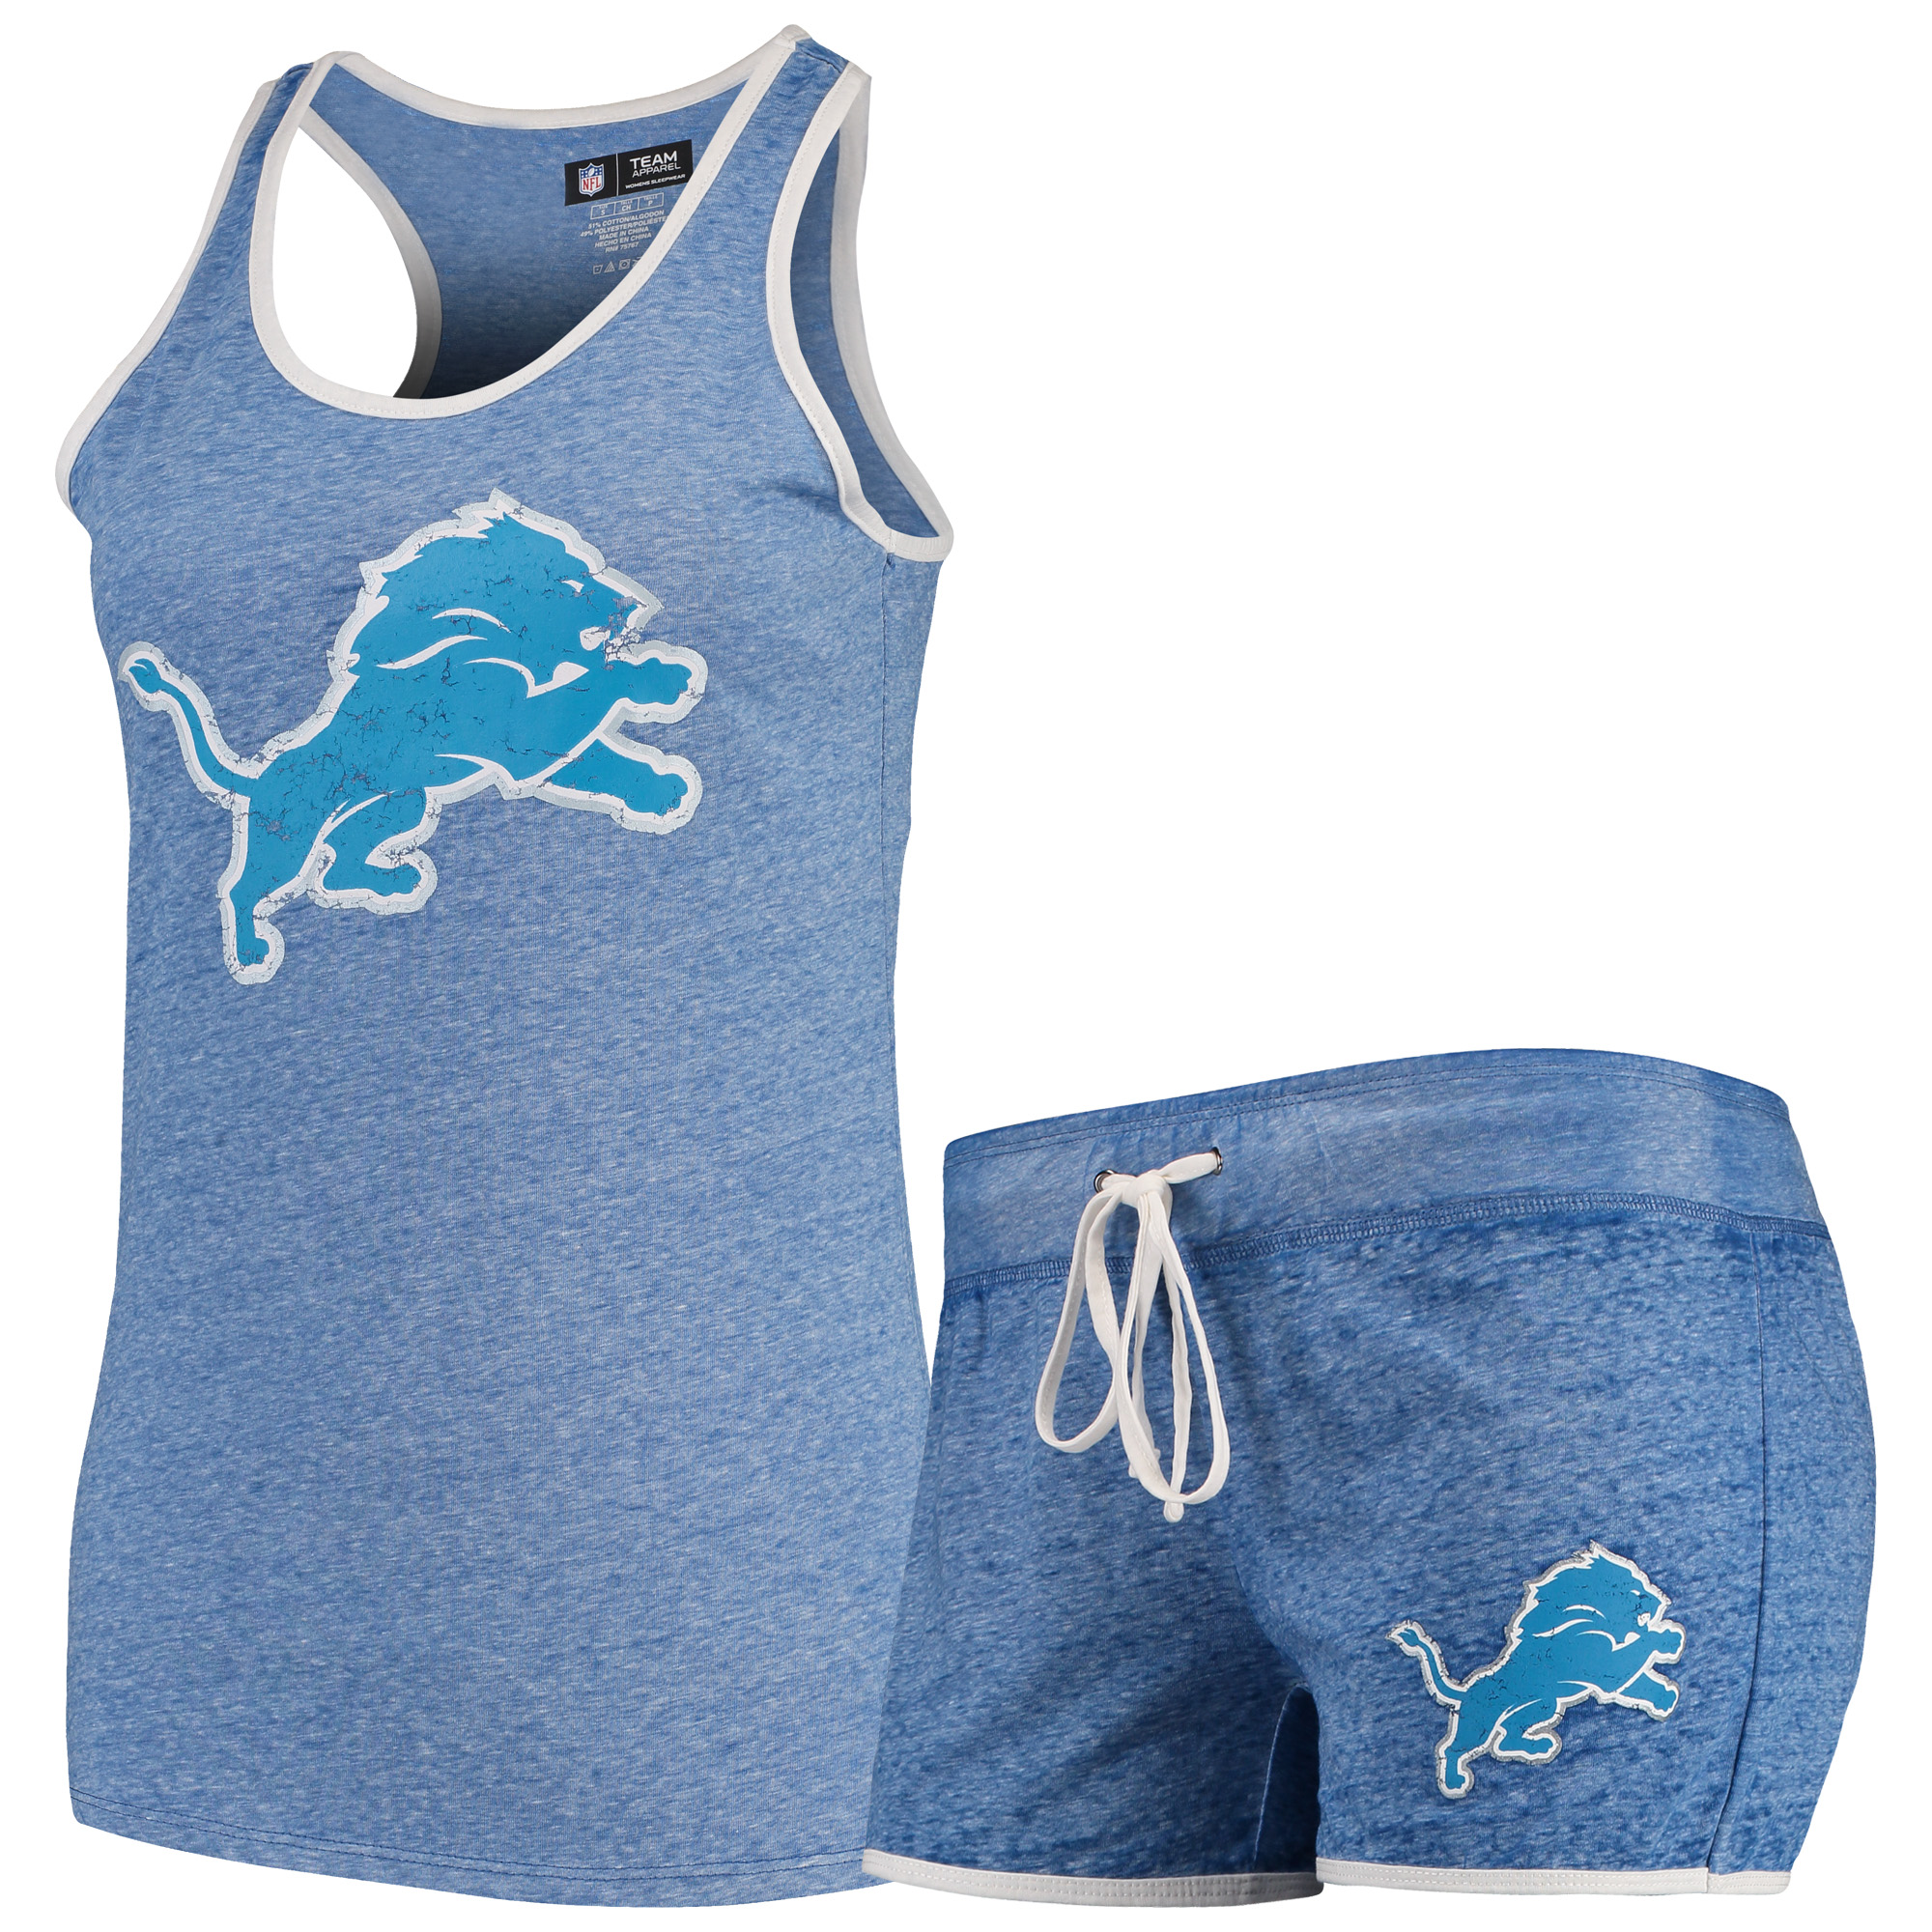 Detroit Lions Concepts Sport Women's Squad Tank Top & Shorts Pajama Set - Heathered Blue